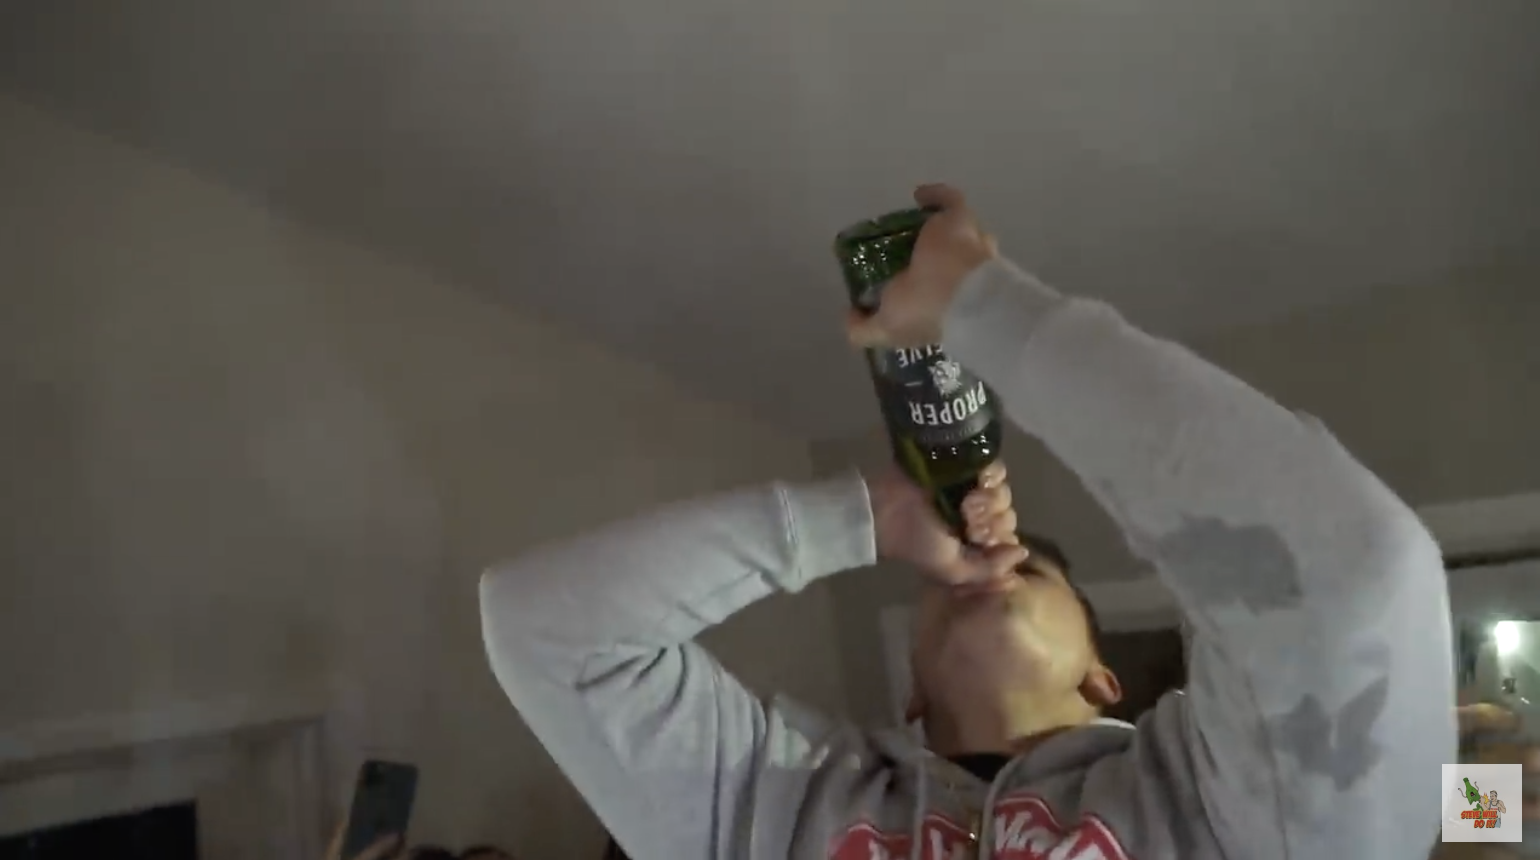 Kid Slams A Bottle Of Proper 12 Because Conor Mcgregor Won Terez Owens 1 Sports Gossip Blog In The World Stevewilldoit actually chugged a full bottle of conor mcgregor whiskey. kid slams a bottle of proper 12 because